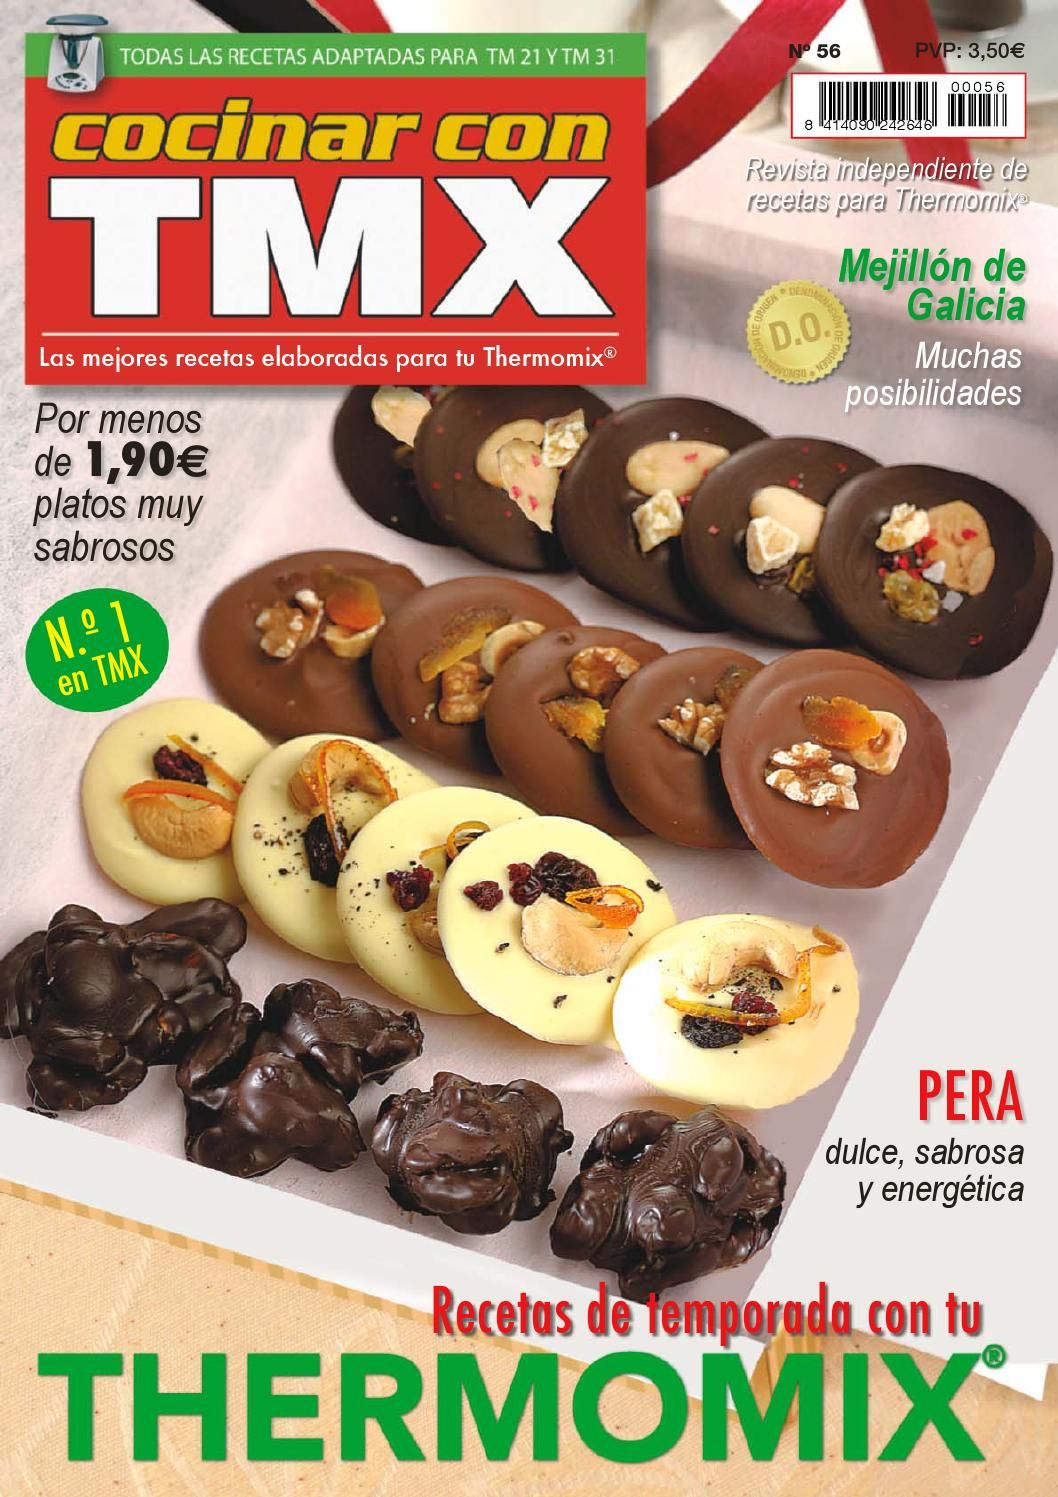 Cocinar con thermomix thermomix for Cocinar con thermomix tm5